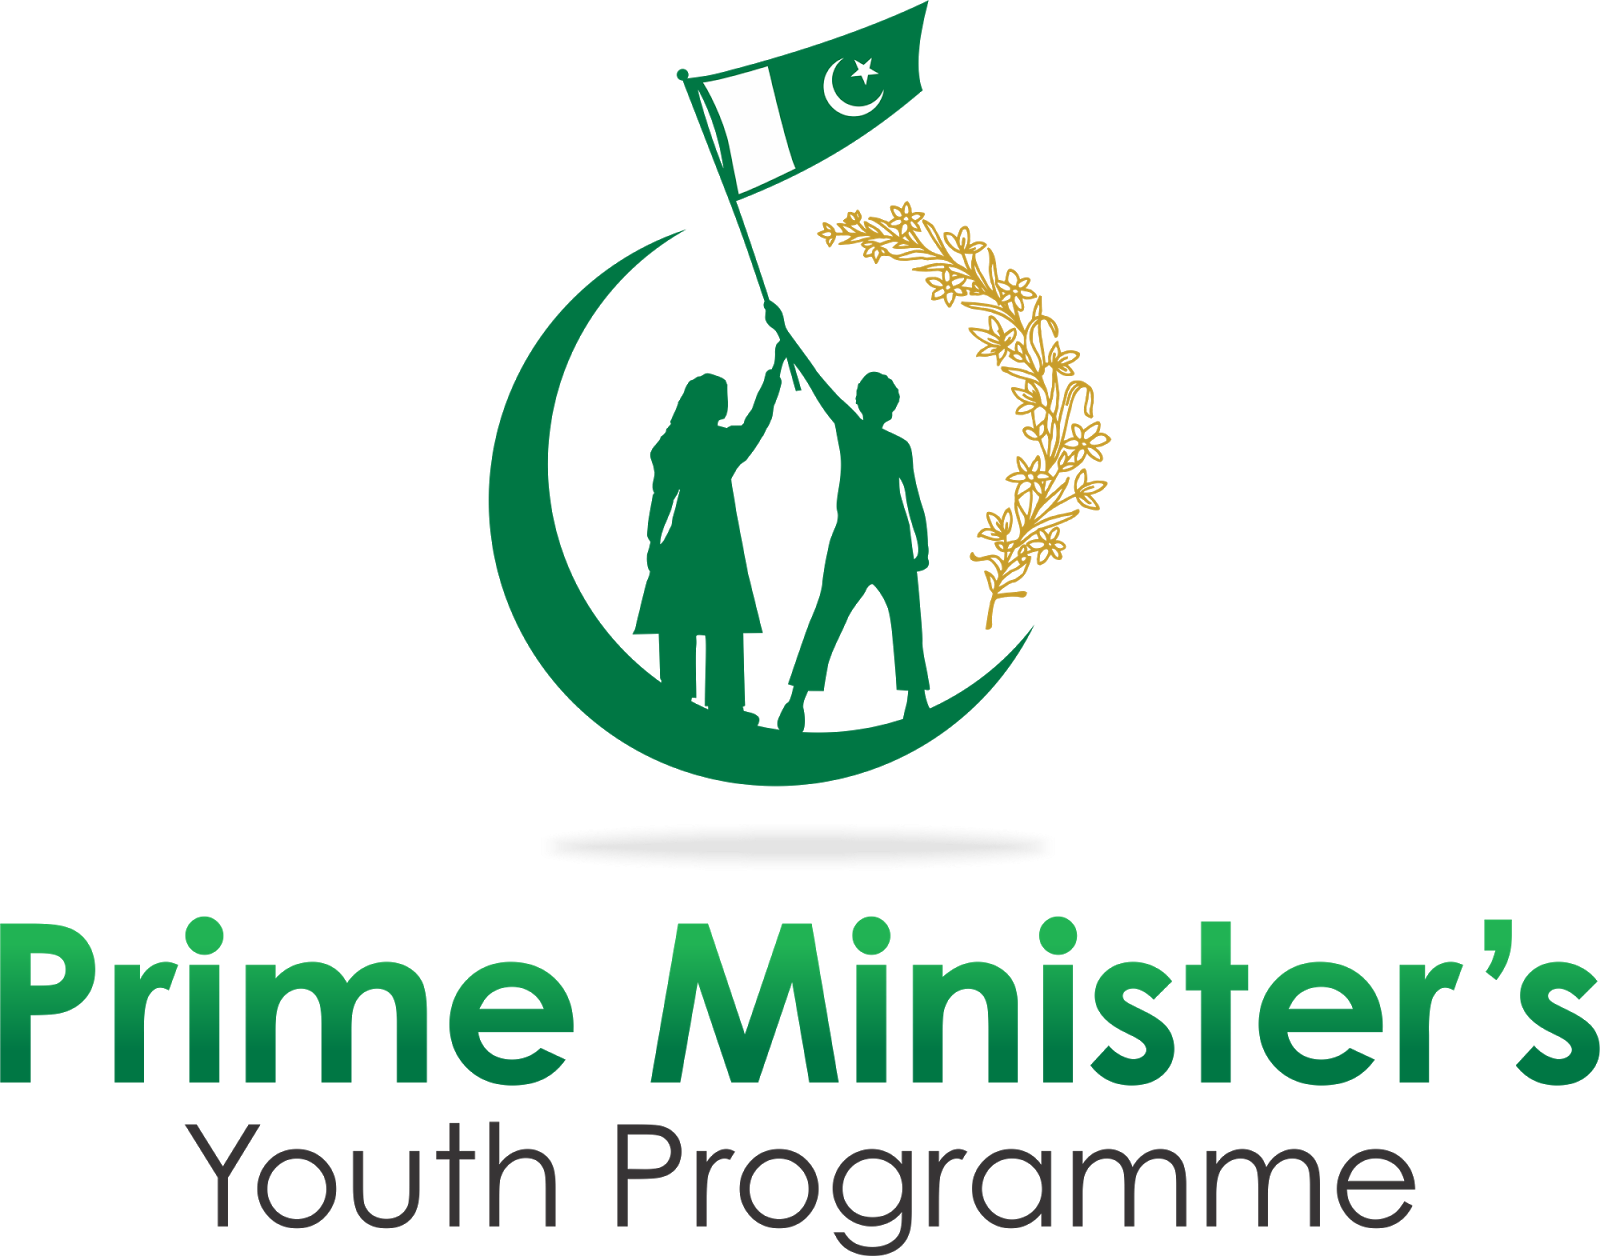 Prime Minister Laptop Scheme Phase III 2017